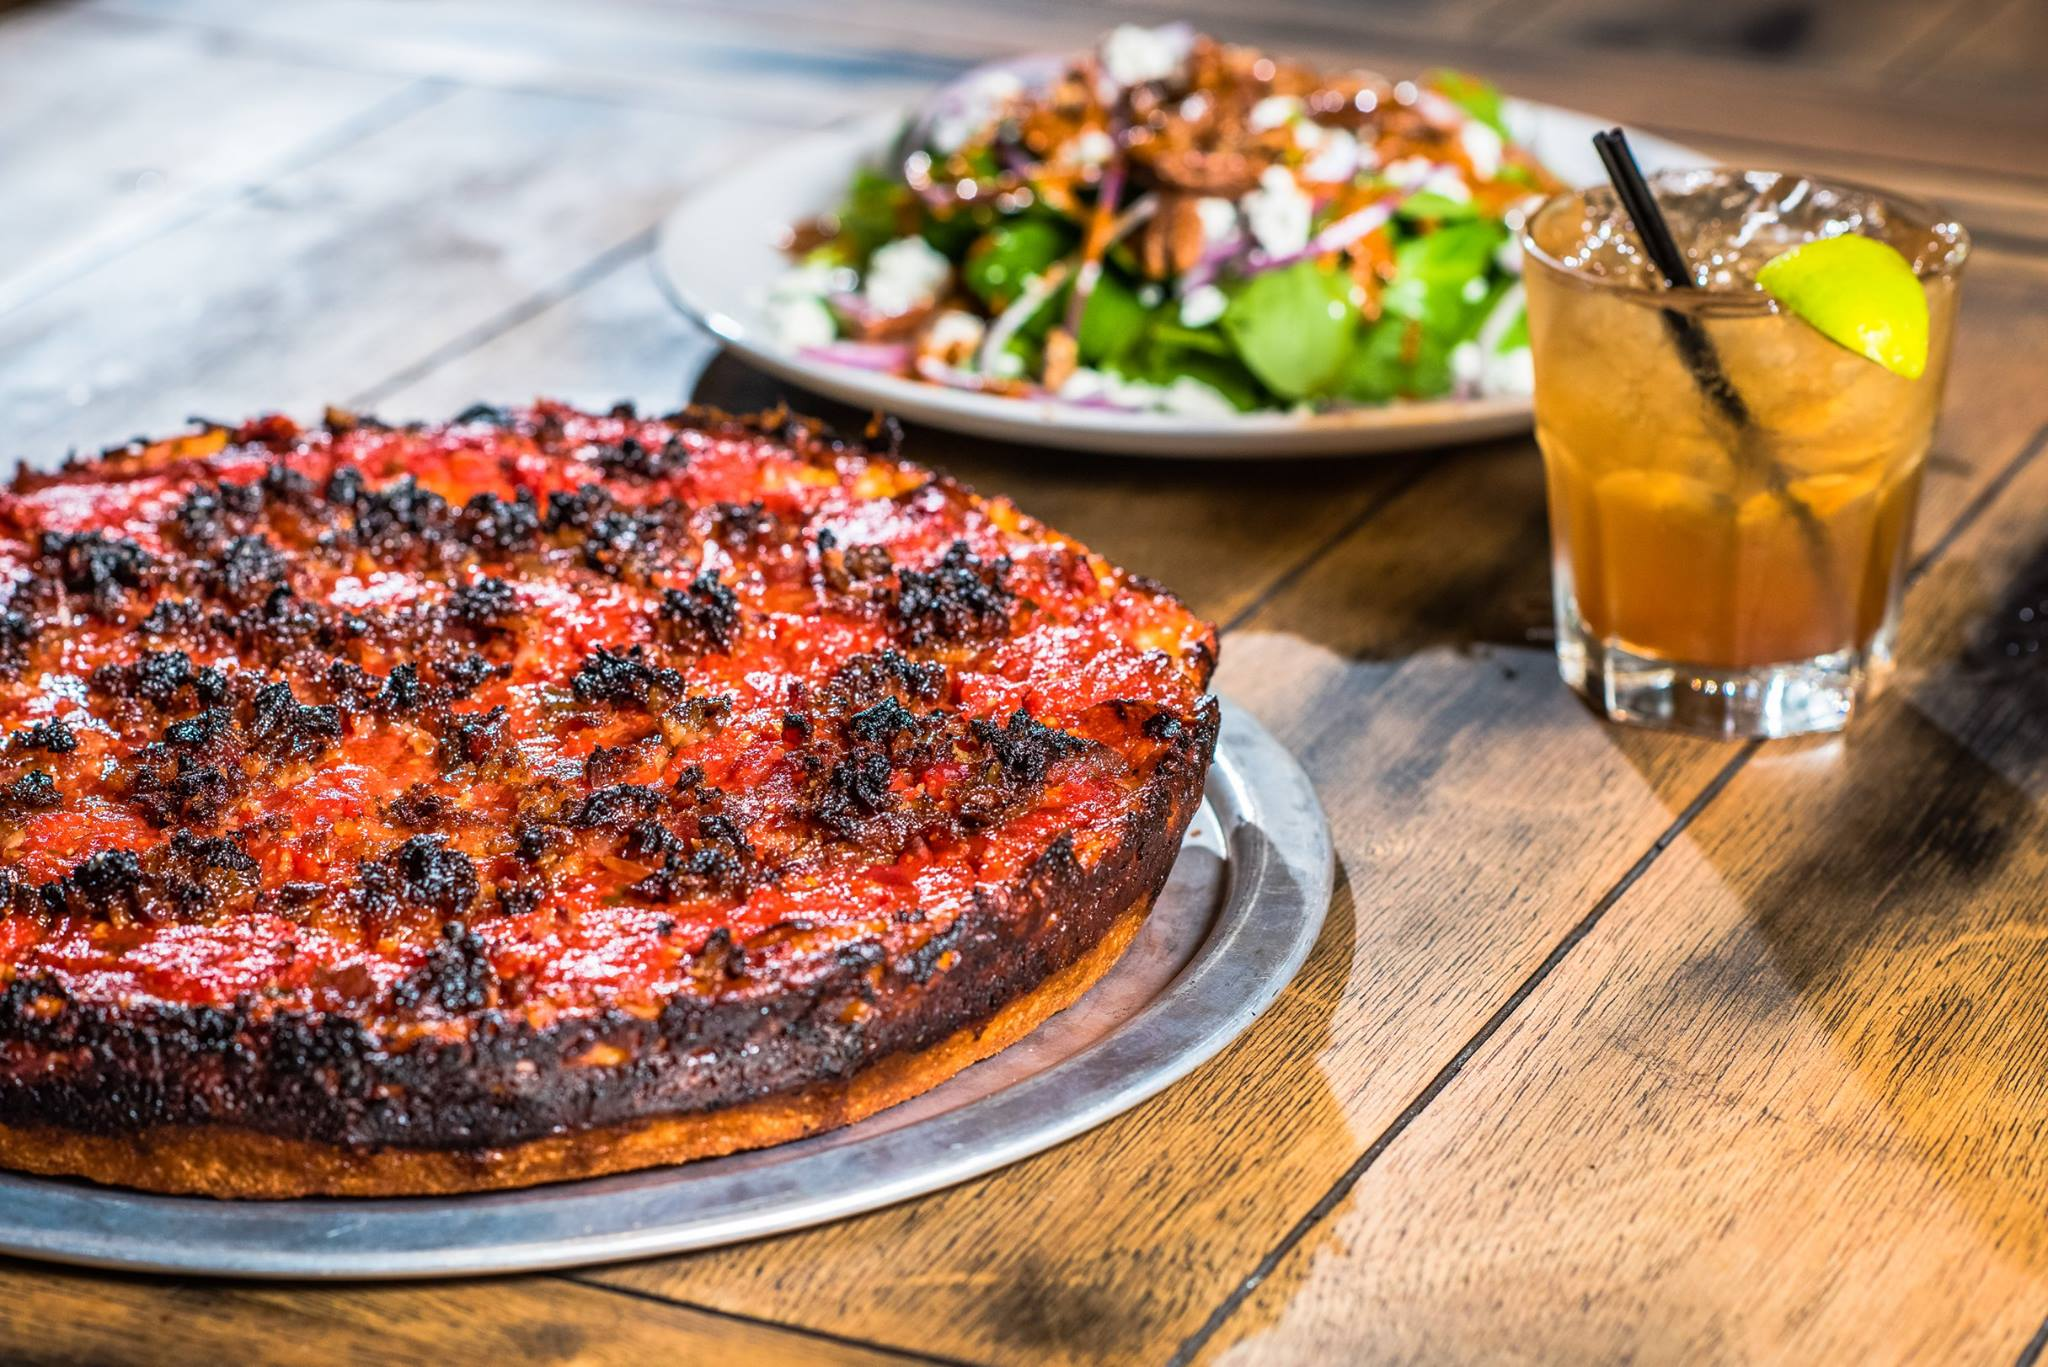 A view of a meaty Chicago deep dish-style pizza, with a cocktail and salad in the background.